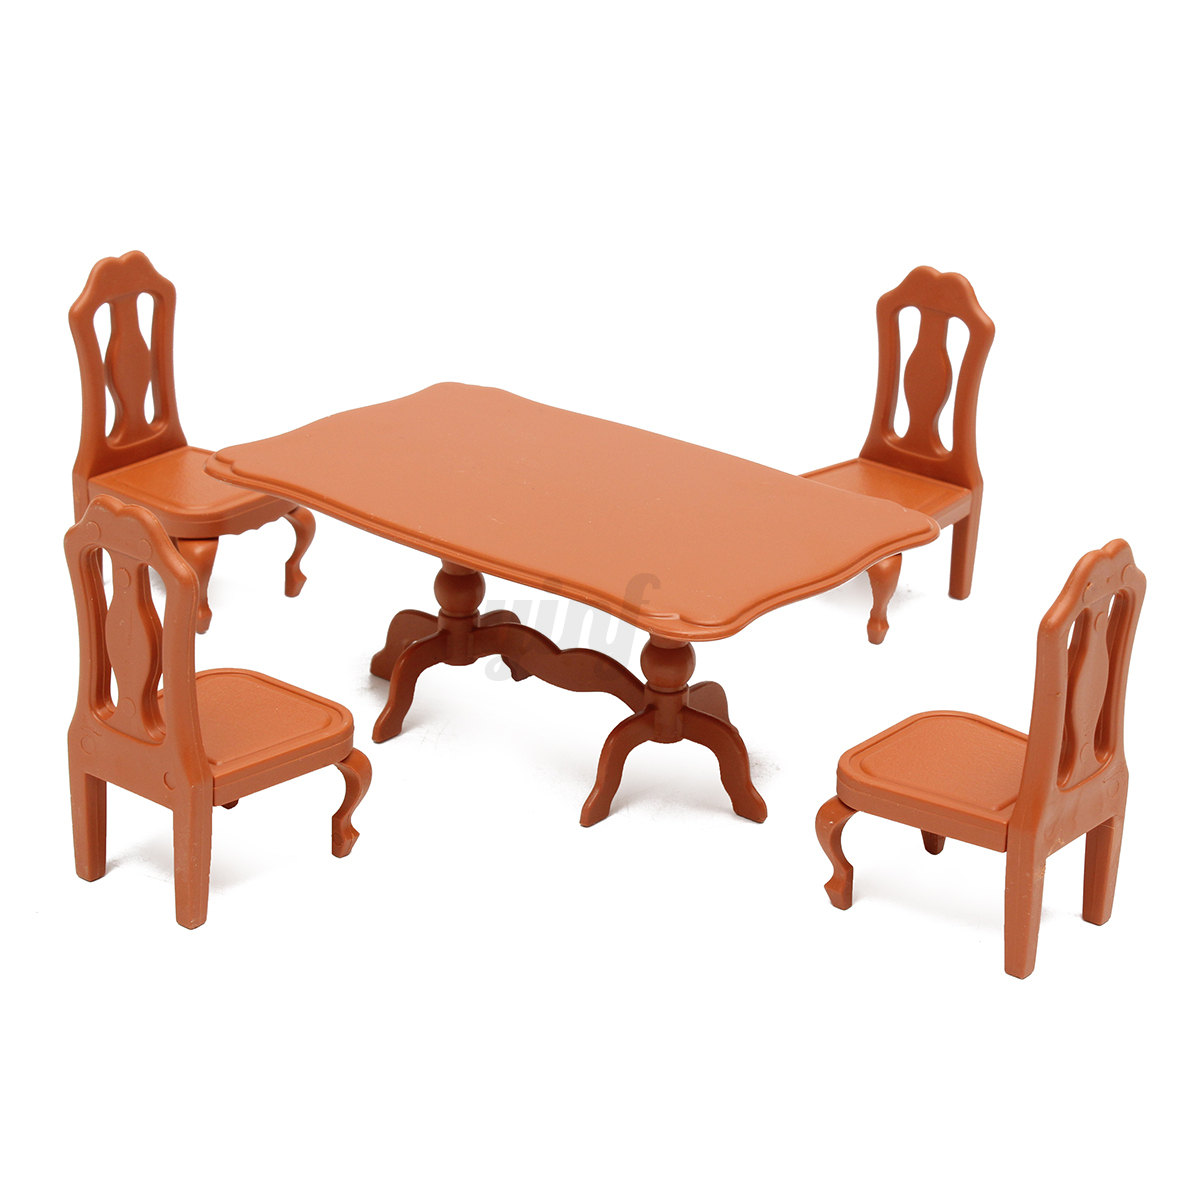 1 12 dining room table with 4 chairs set dolls house for C furniture new lynn